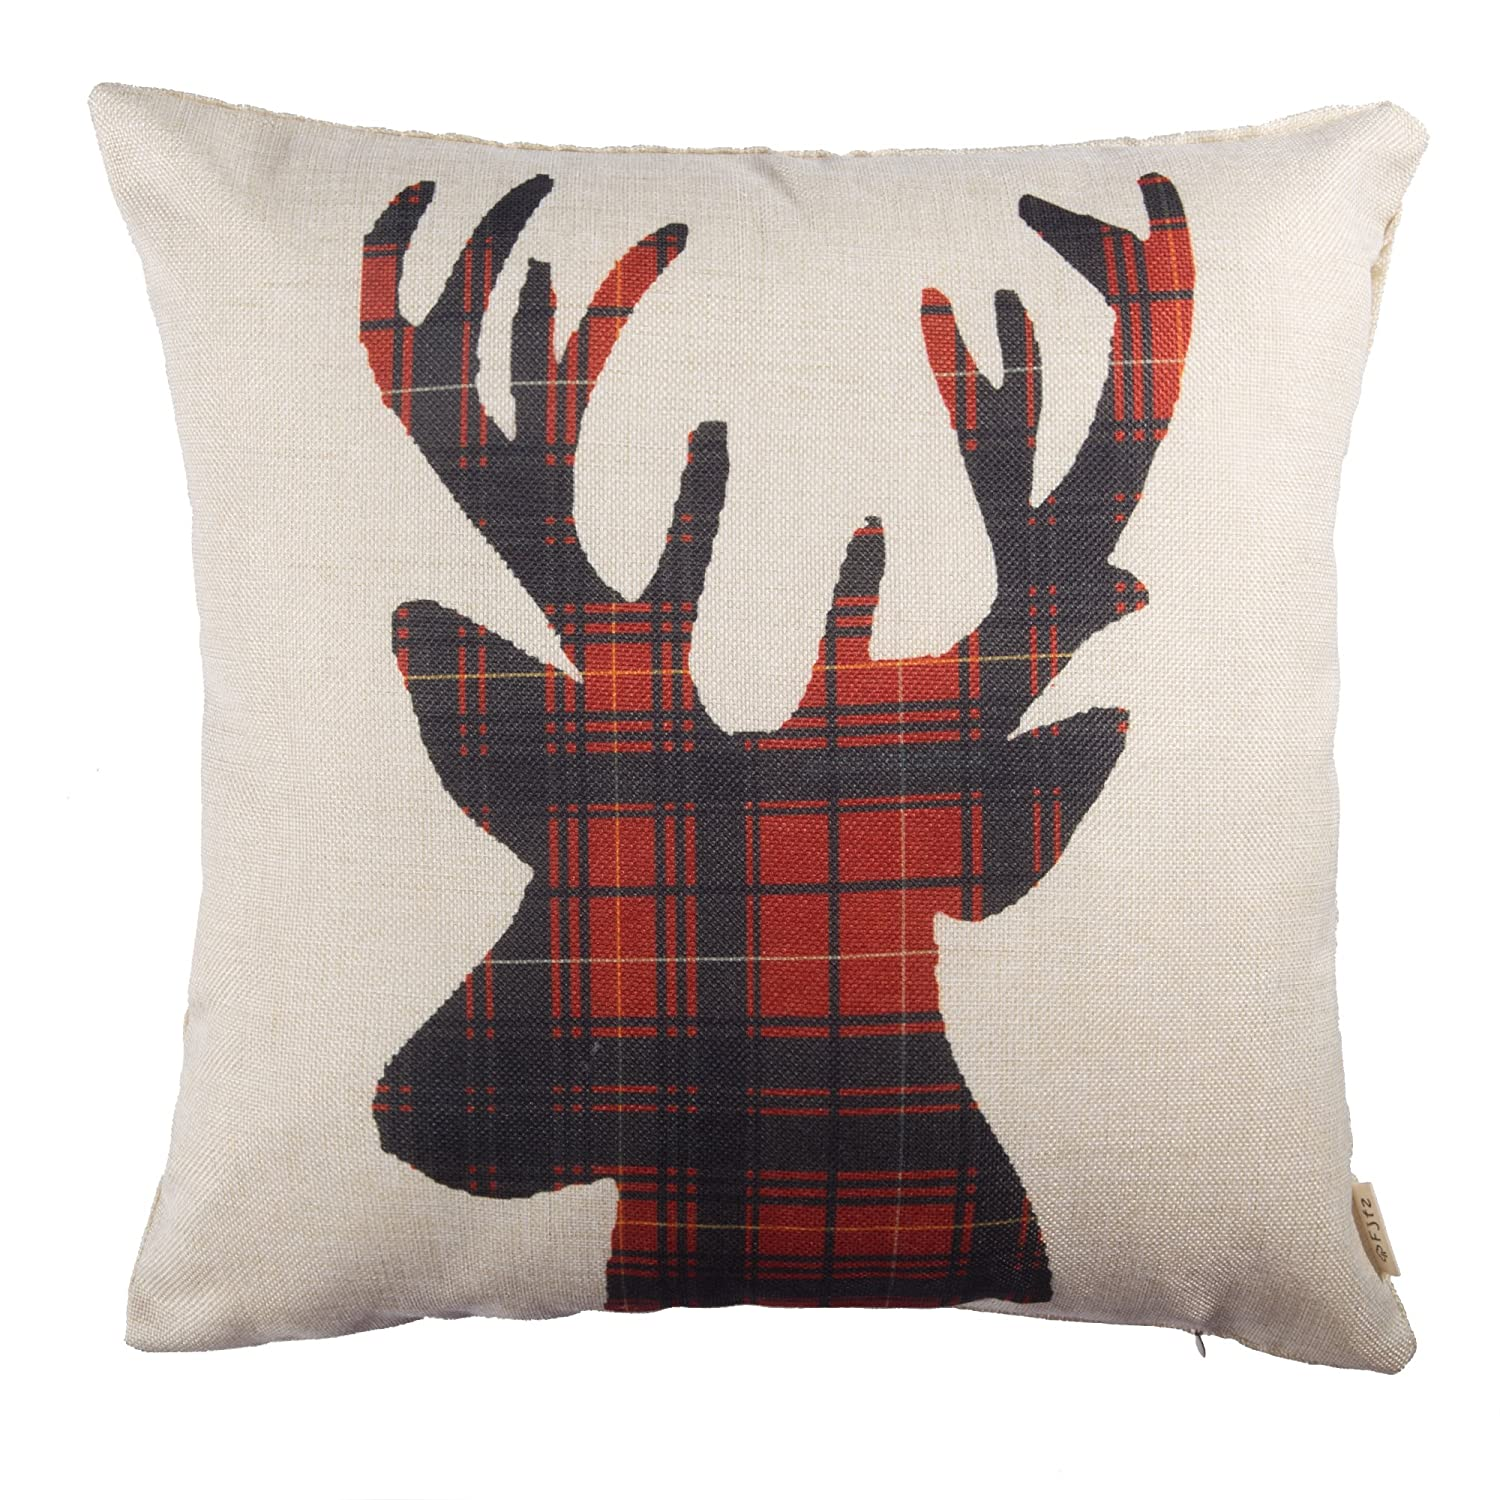 Swell Fjfz Farmhouse Decor Holiday Decoration Cotton Linen Home Decorative Throw Pillow Case Cushion Cover For Sofa Couch Christmas Winter Deer Scottish Inzonedesignstudio Interior Chair Design Inzonedesignstudiocom